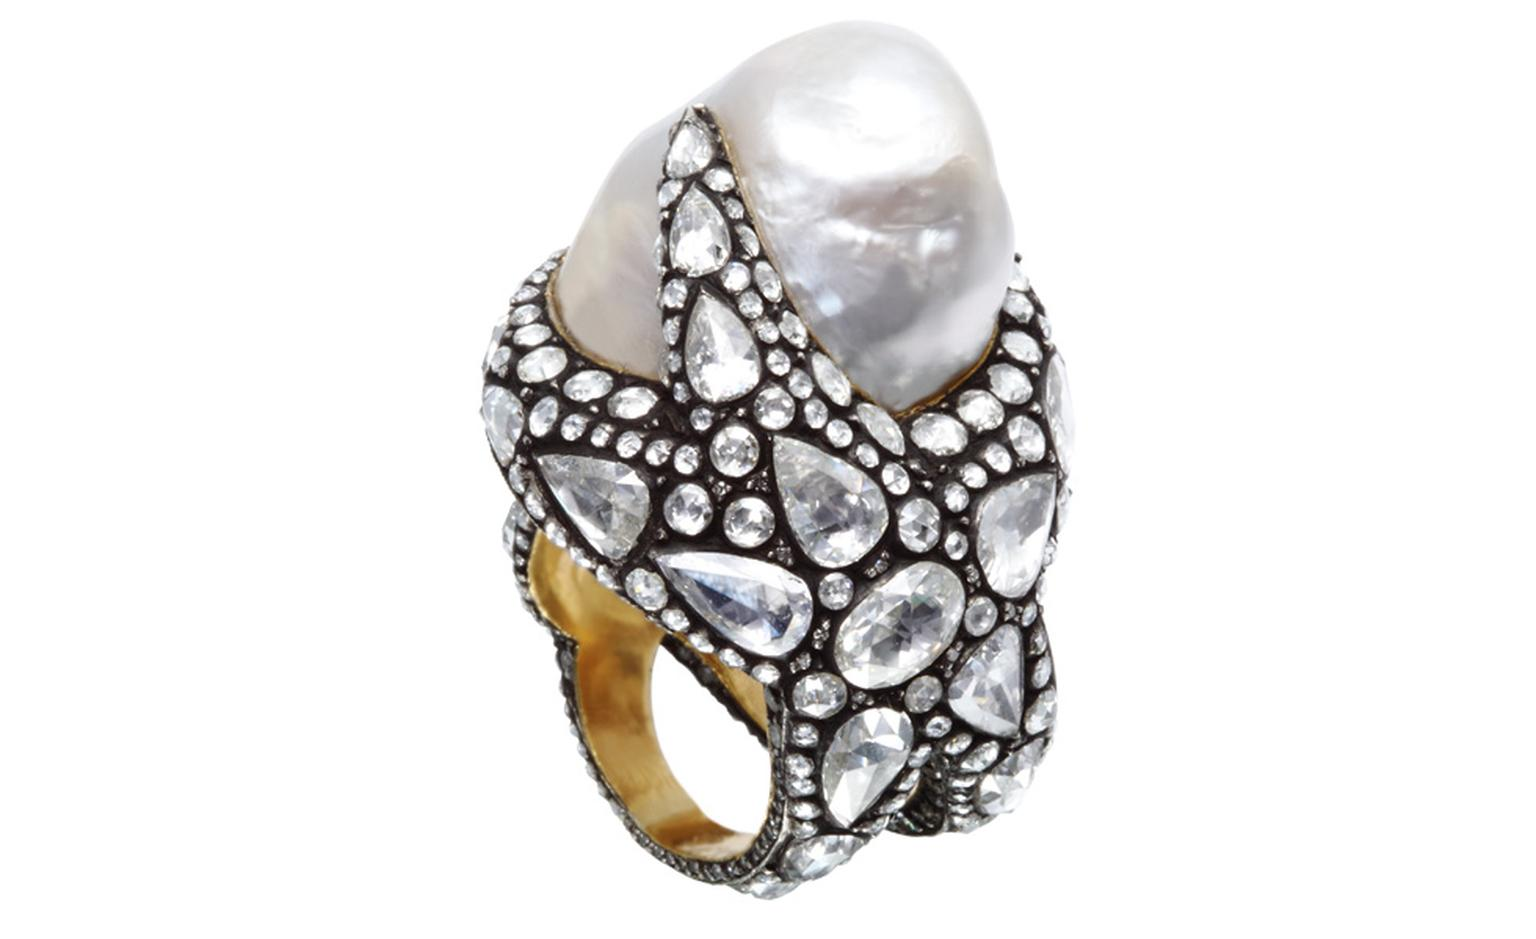 More marine inspiration in this Sevan Biçakçi ring that wraps a starfish around the finger topped by a gorgeous baroque pearl. Rose-cut diamonds stand out against the oxidised metal.